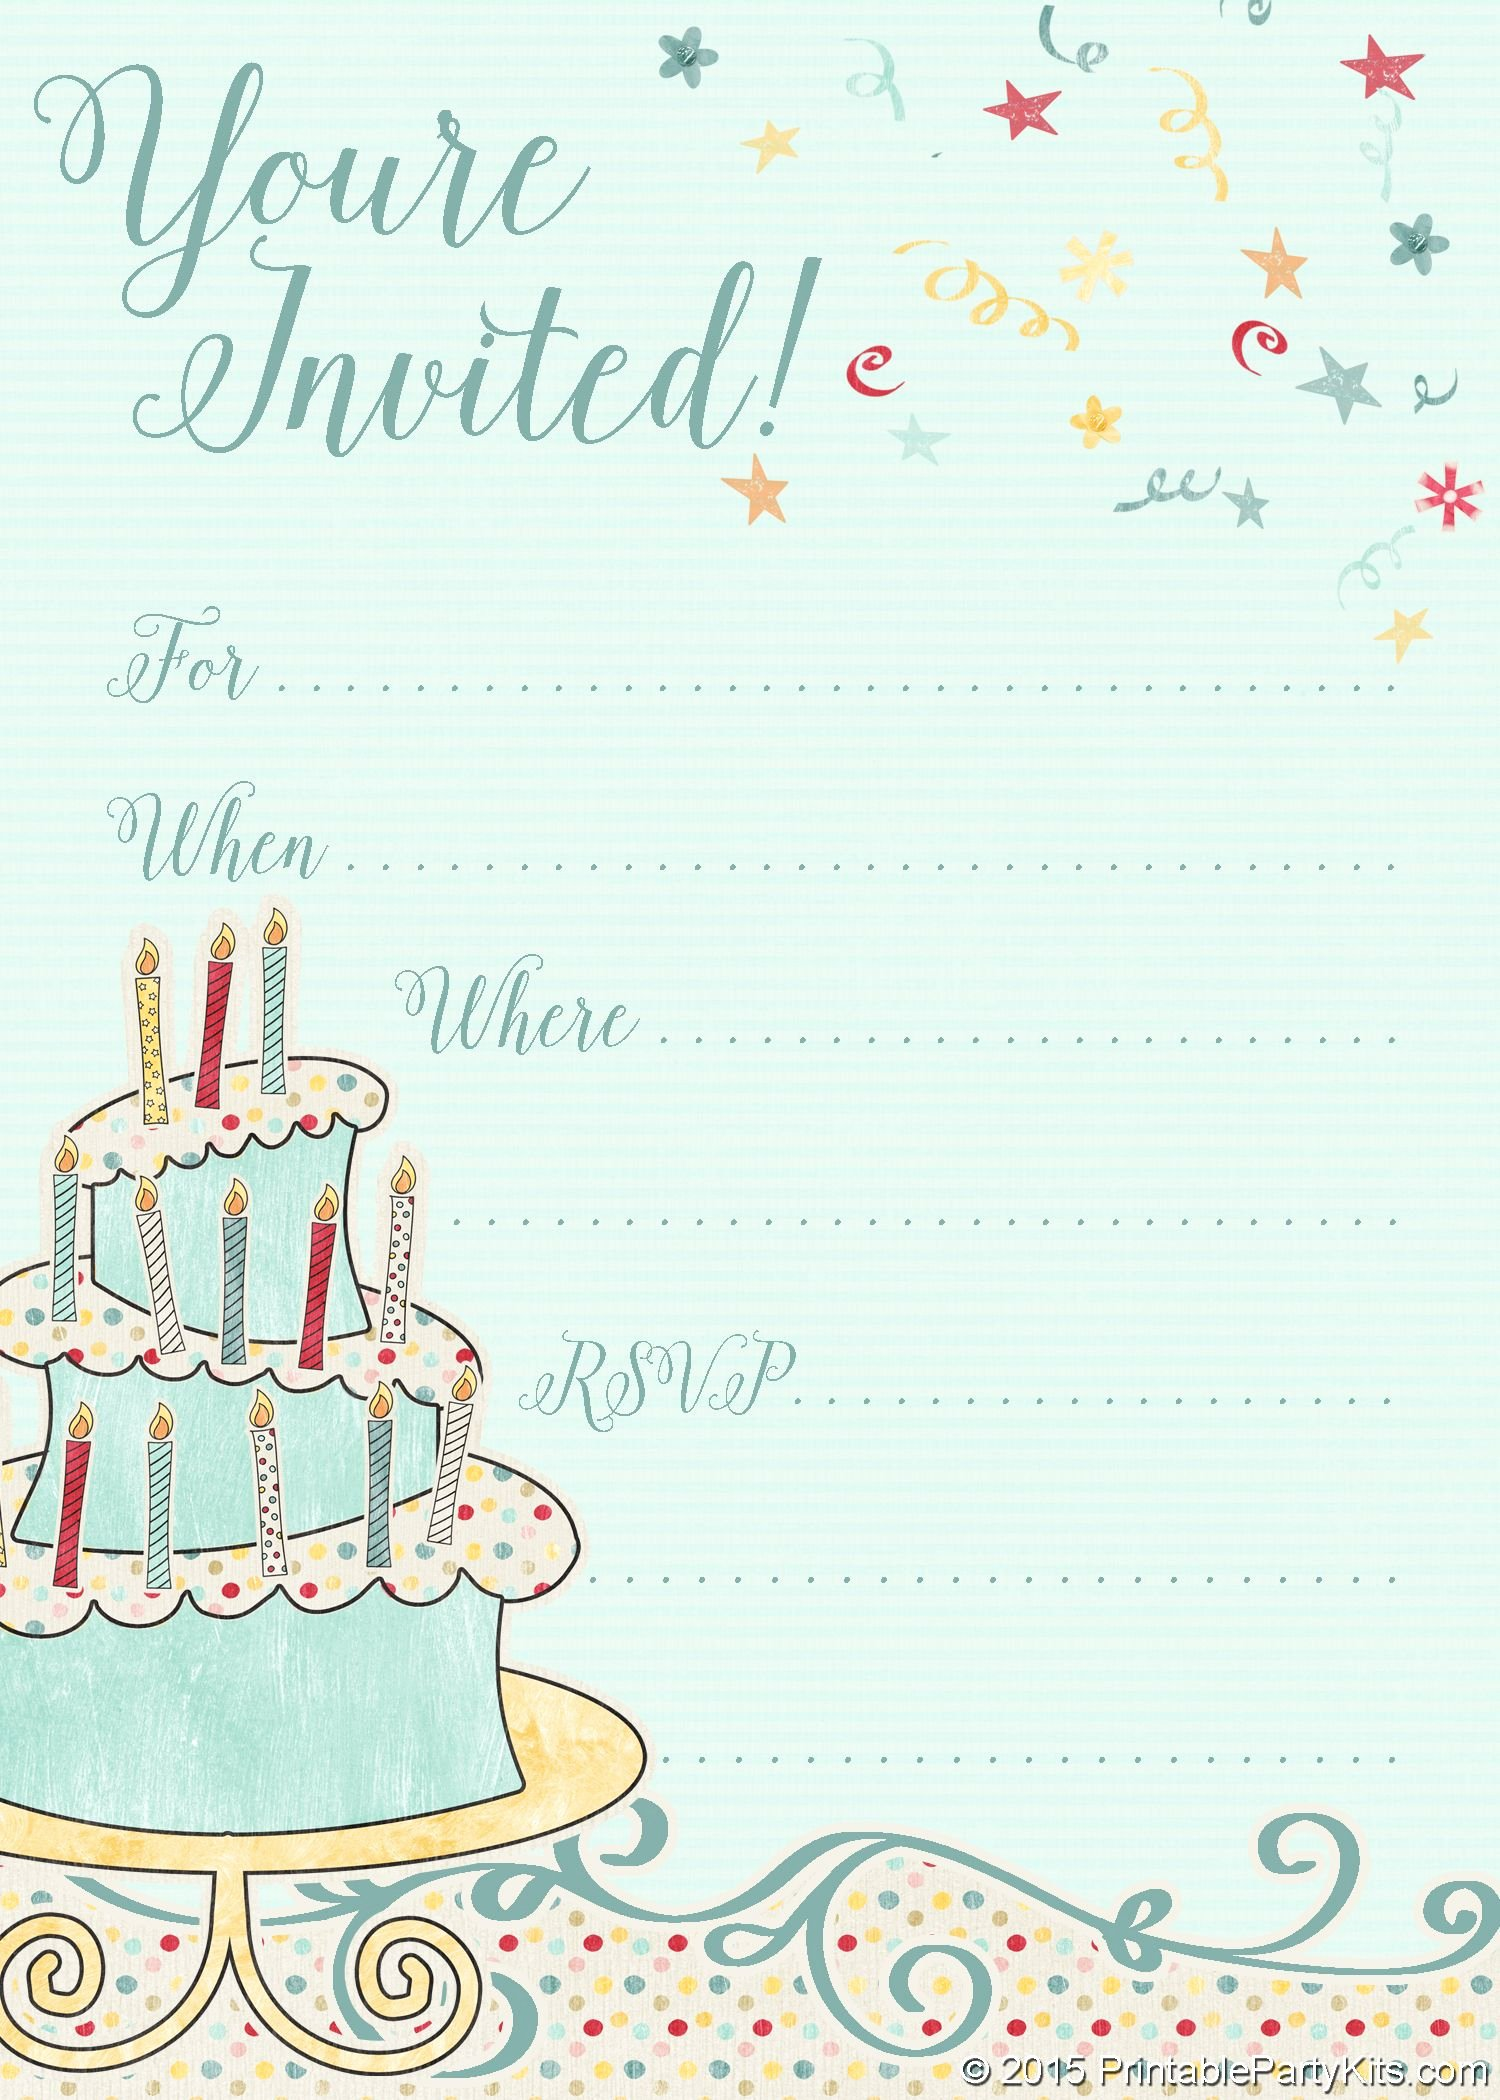 Printable Invitations for Free Lovely Free Printable Whimsical Birthday Party Invitation